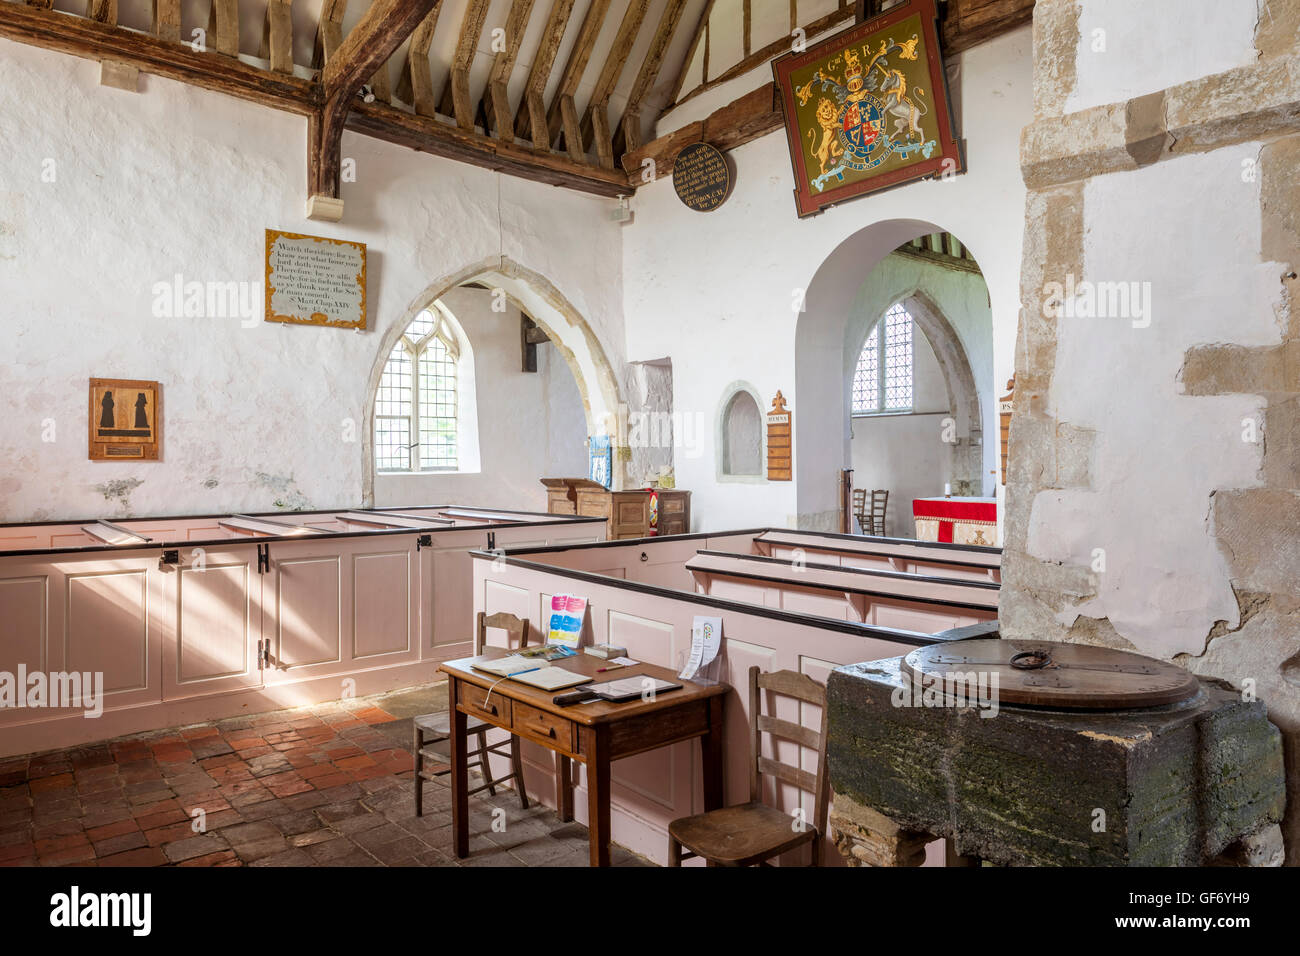 The interior of St Clements church in the Romney Marsh village of Old Romney, Kent UK . - Stock Image